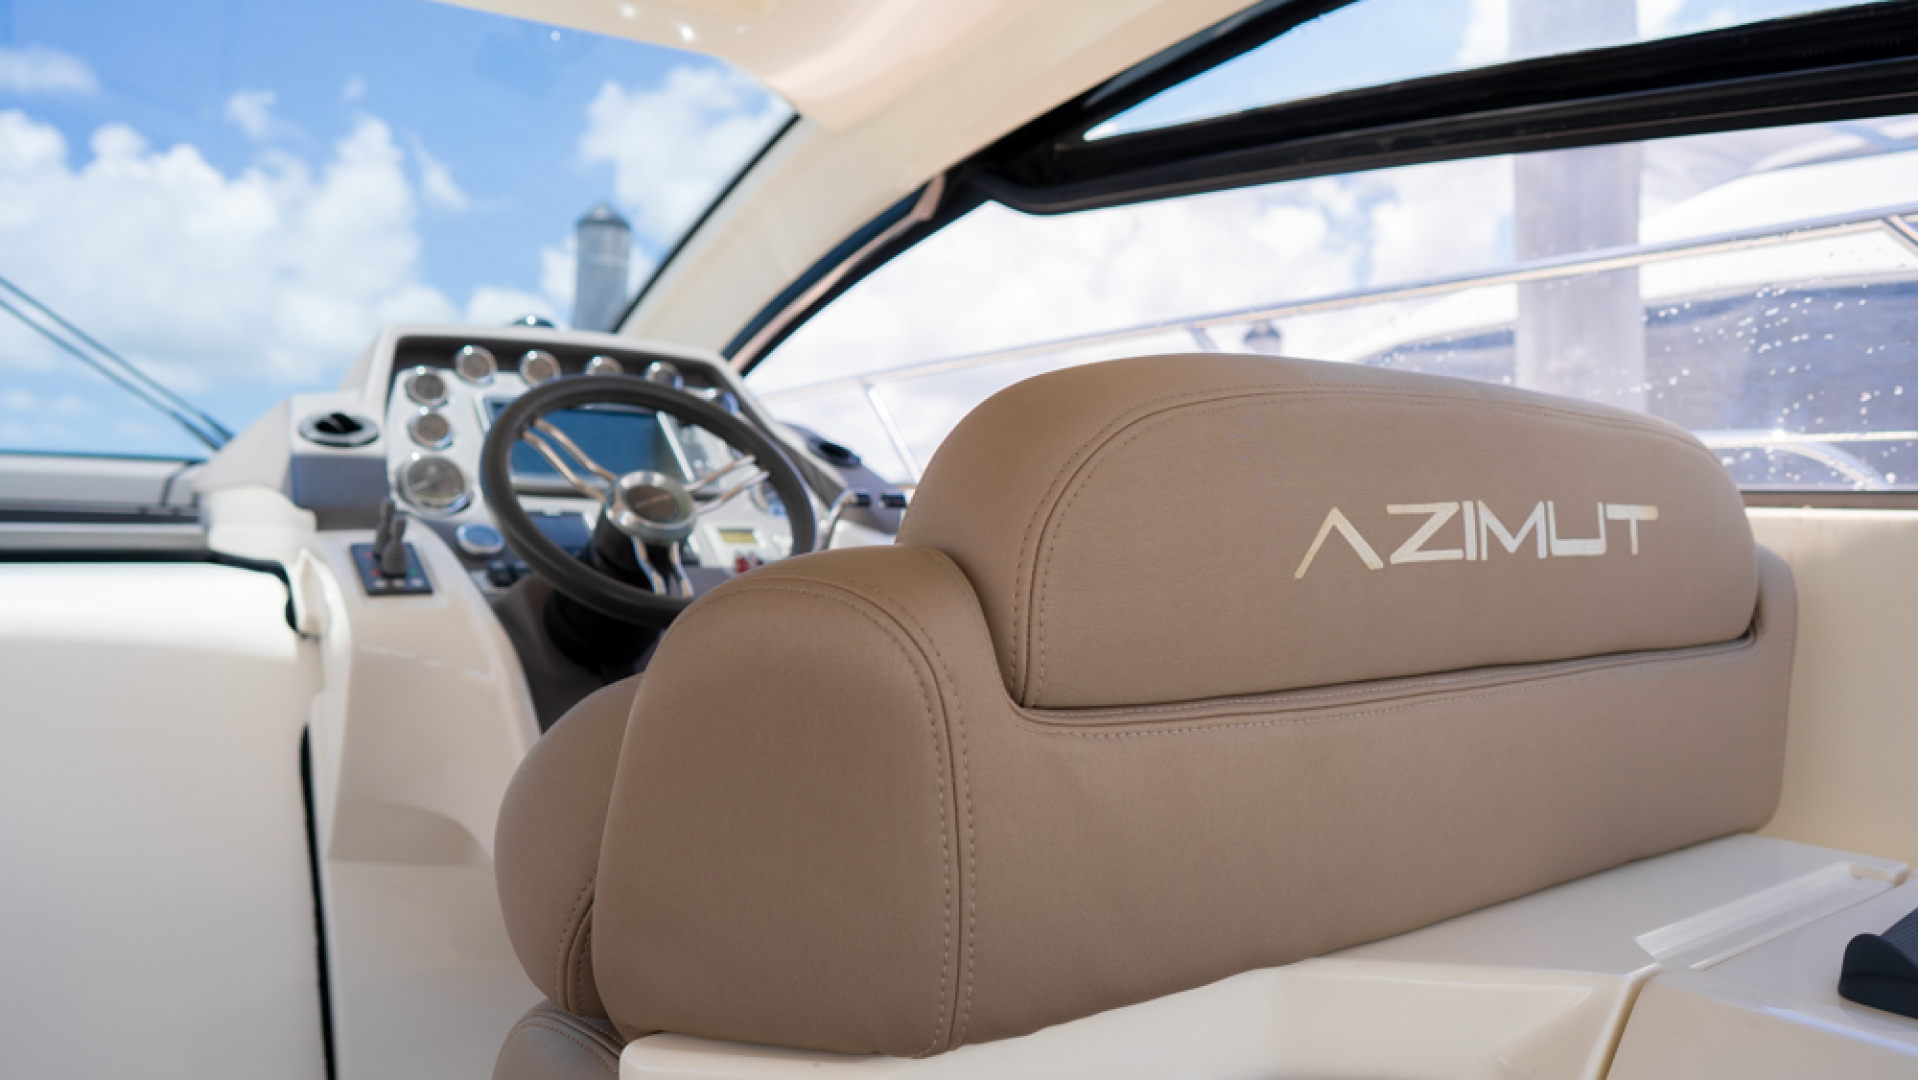 Azimut-Atlantis 48 2013-Spectrum Miami Beach-Florida-United States-1203137 | Thumbnail